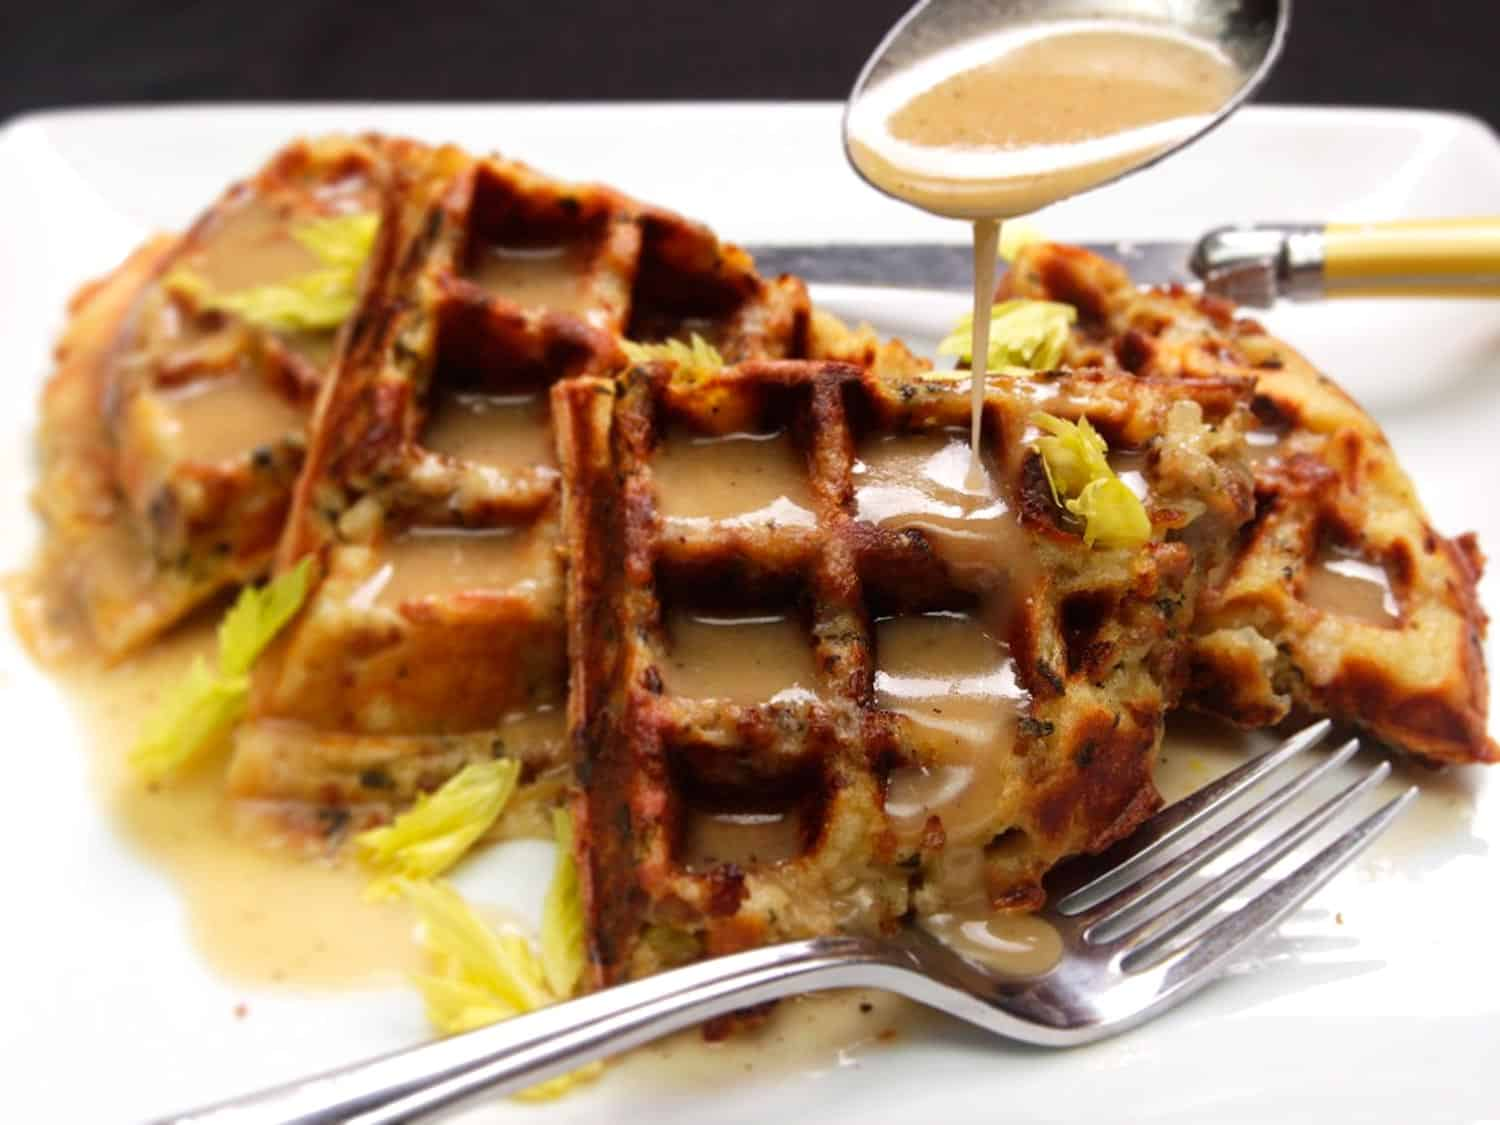 Gravy smothered thanksgiving stuffing waffles